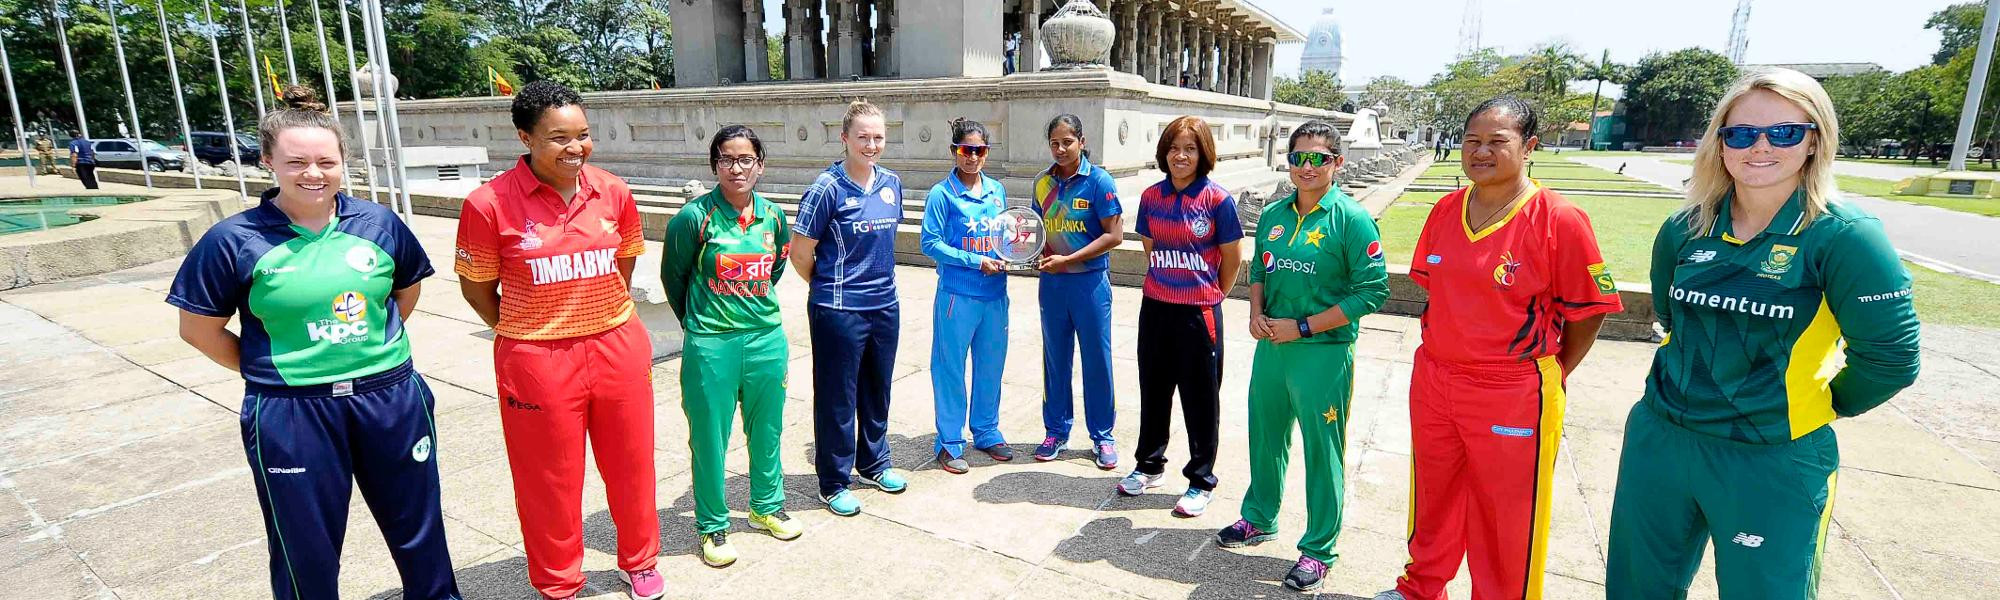 The ICC Women's World Cup Qualifier 2017